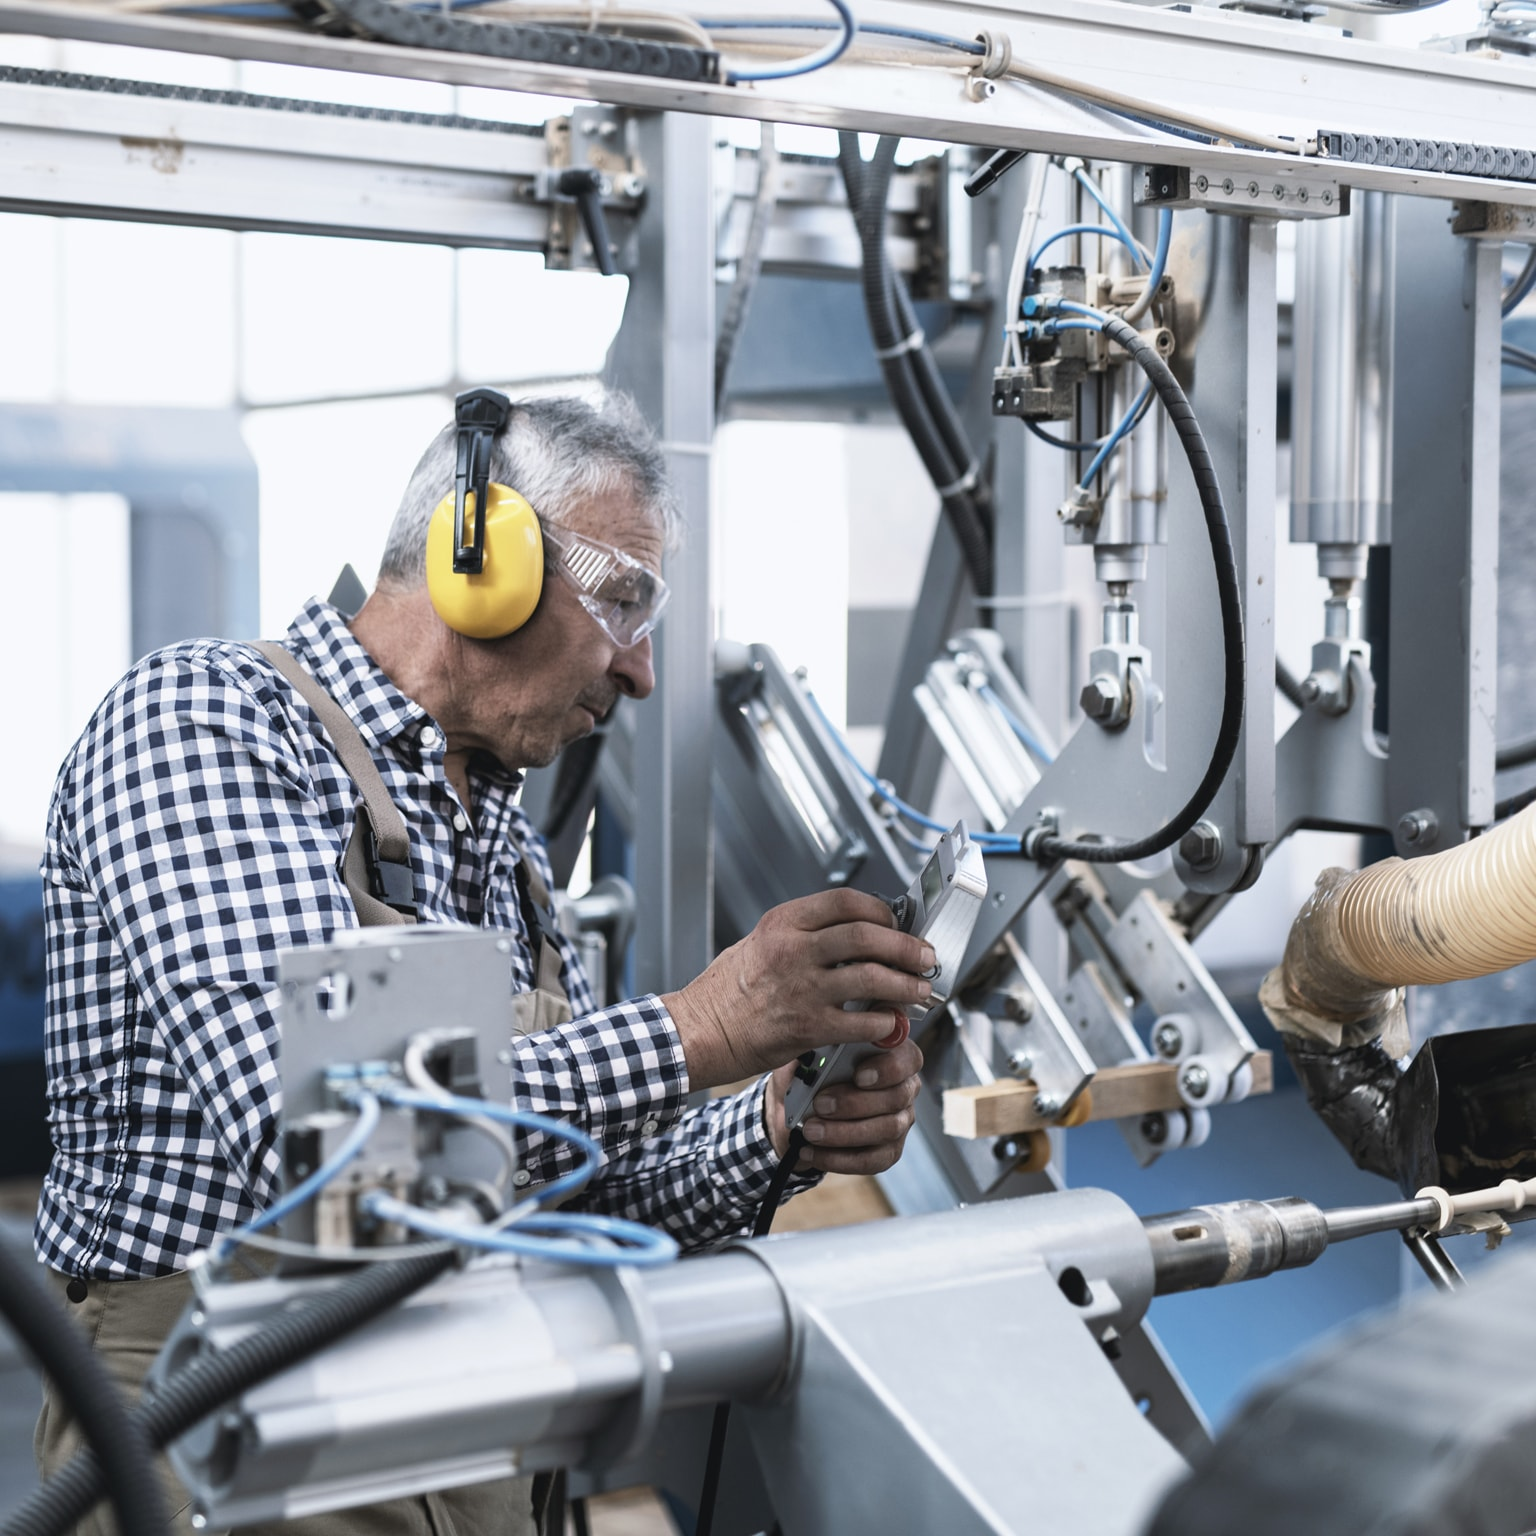 The Fourth Industrial Revolution and manufacturing's great reset